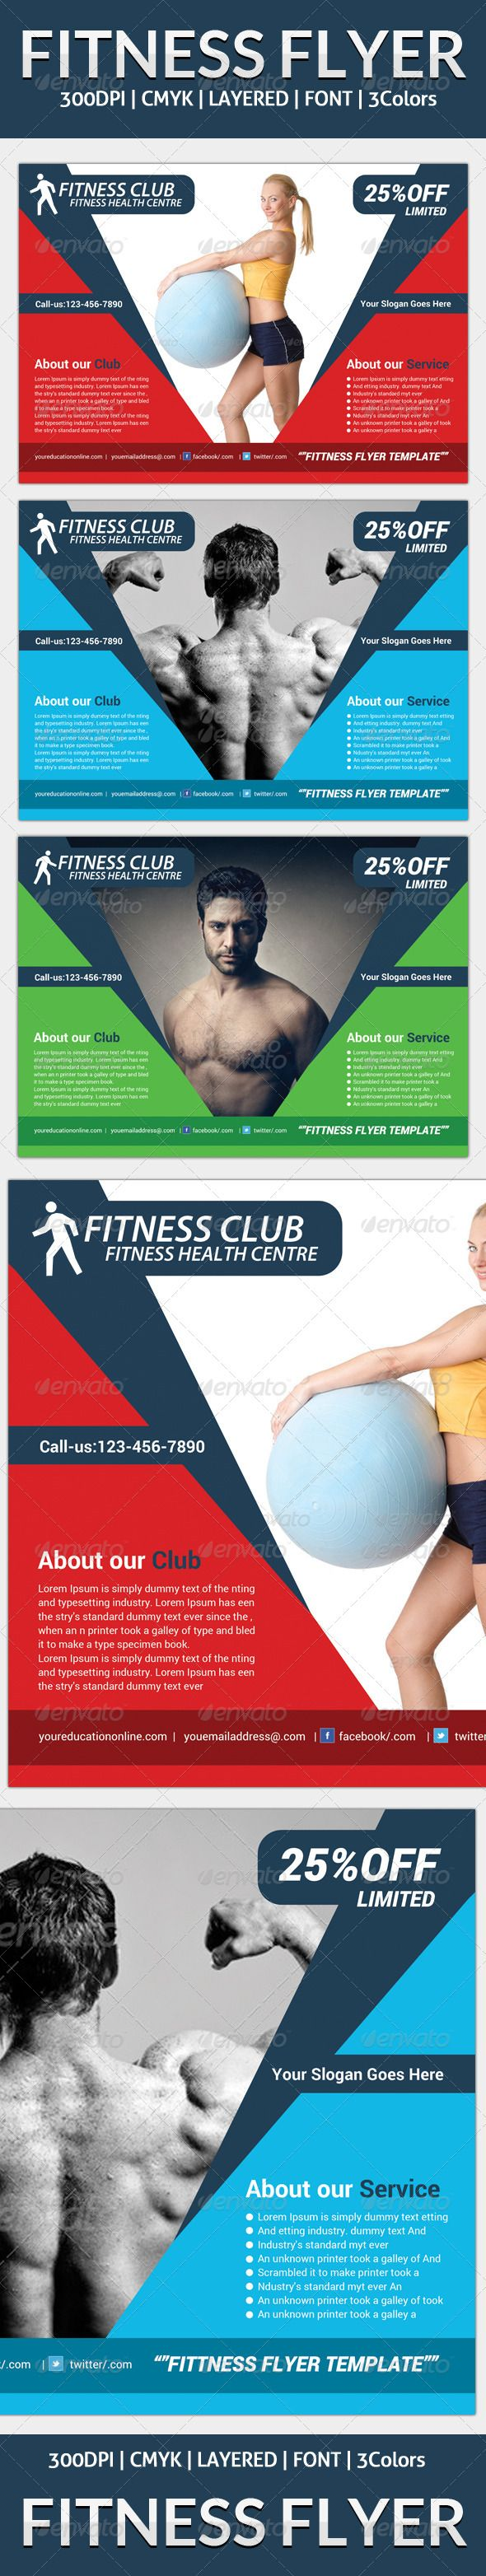 best images about gym advertisement business fitness flyer template graphicriver